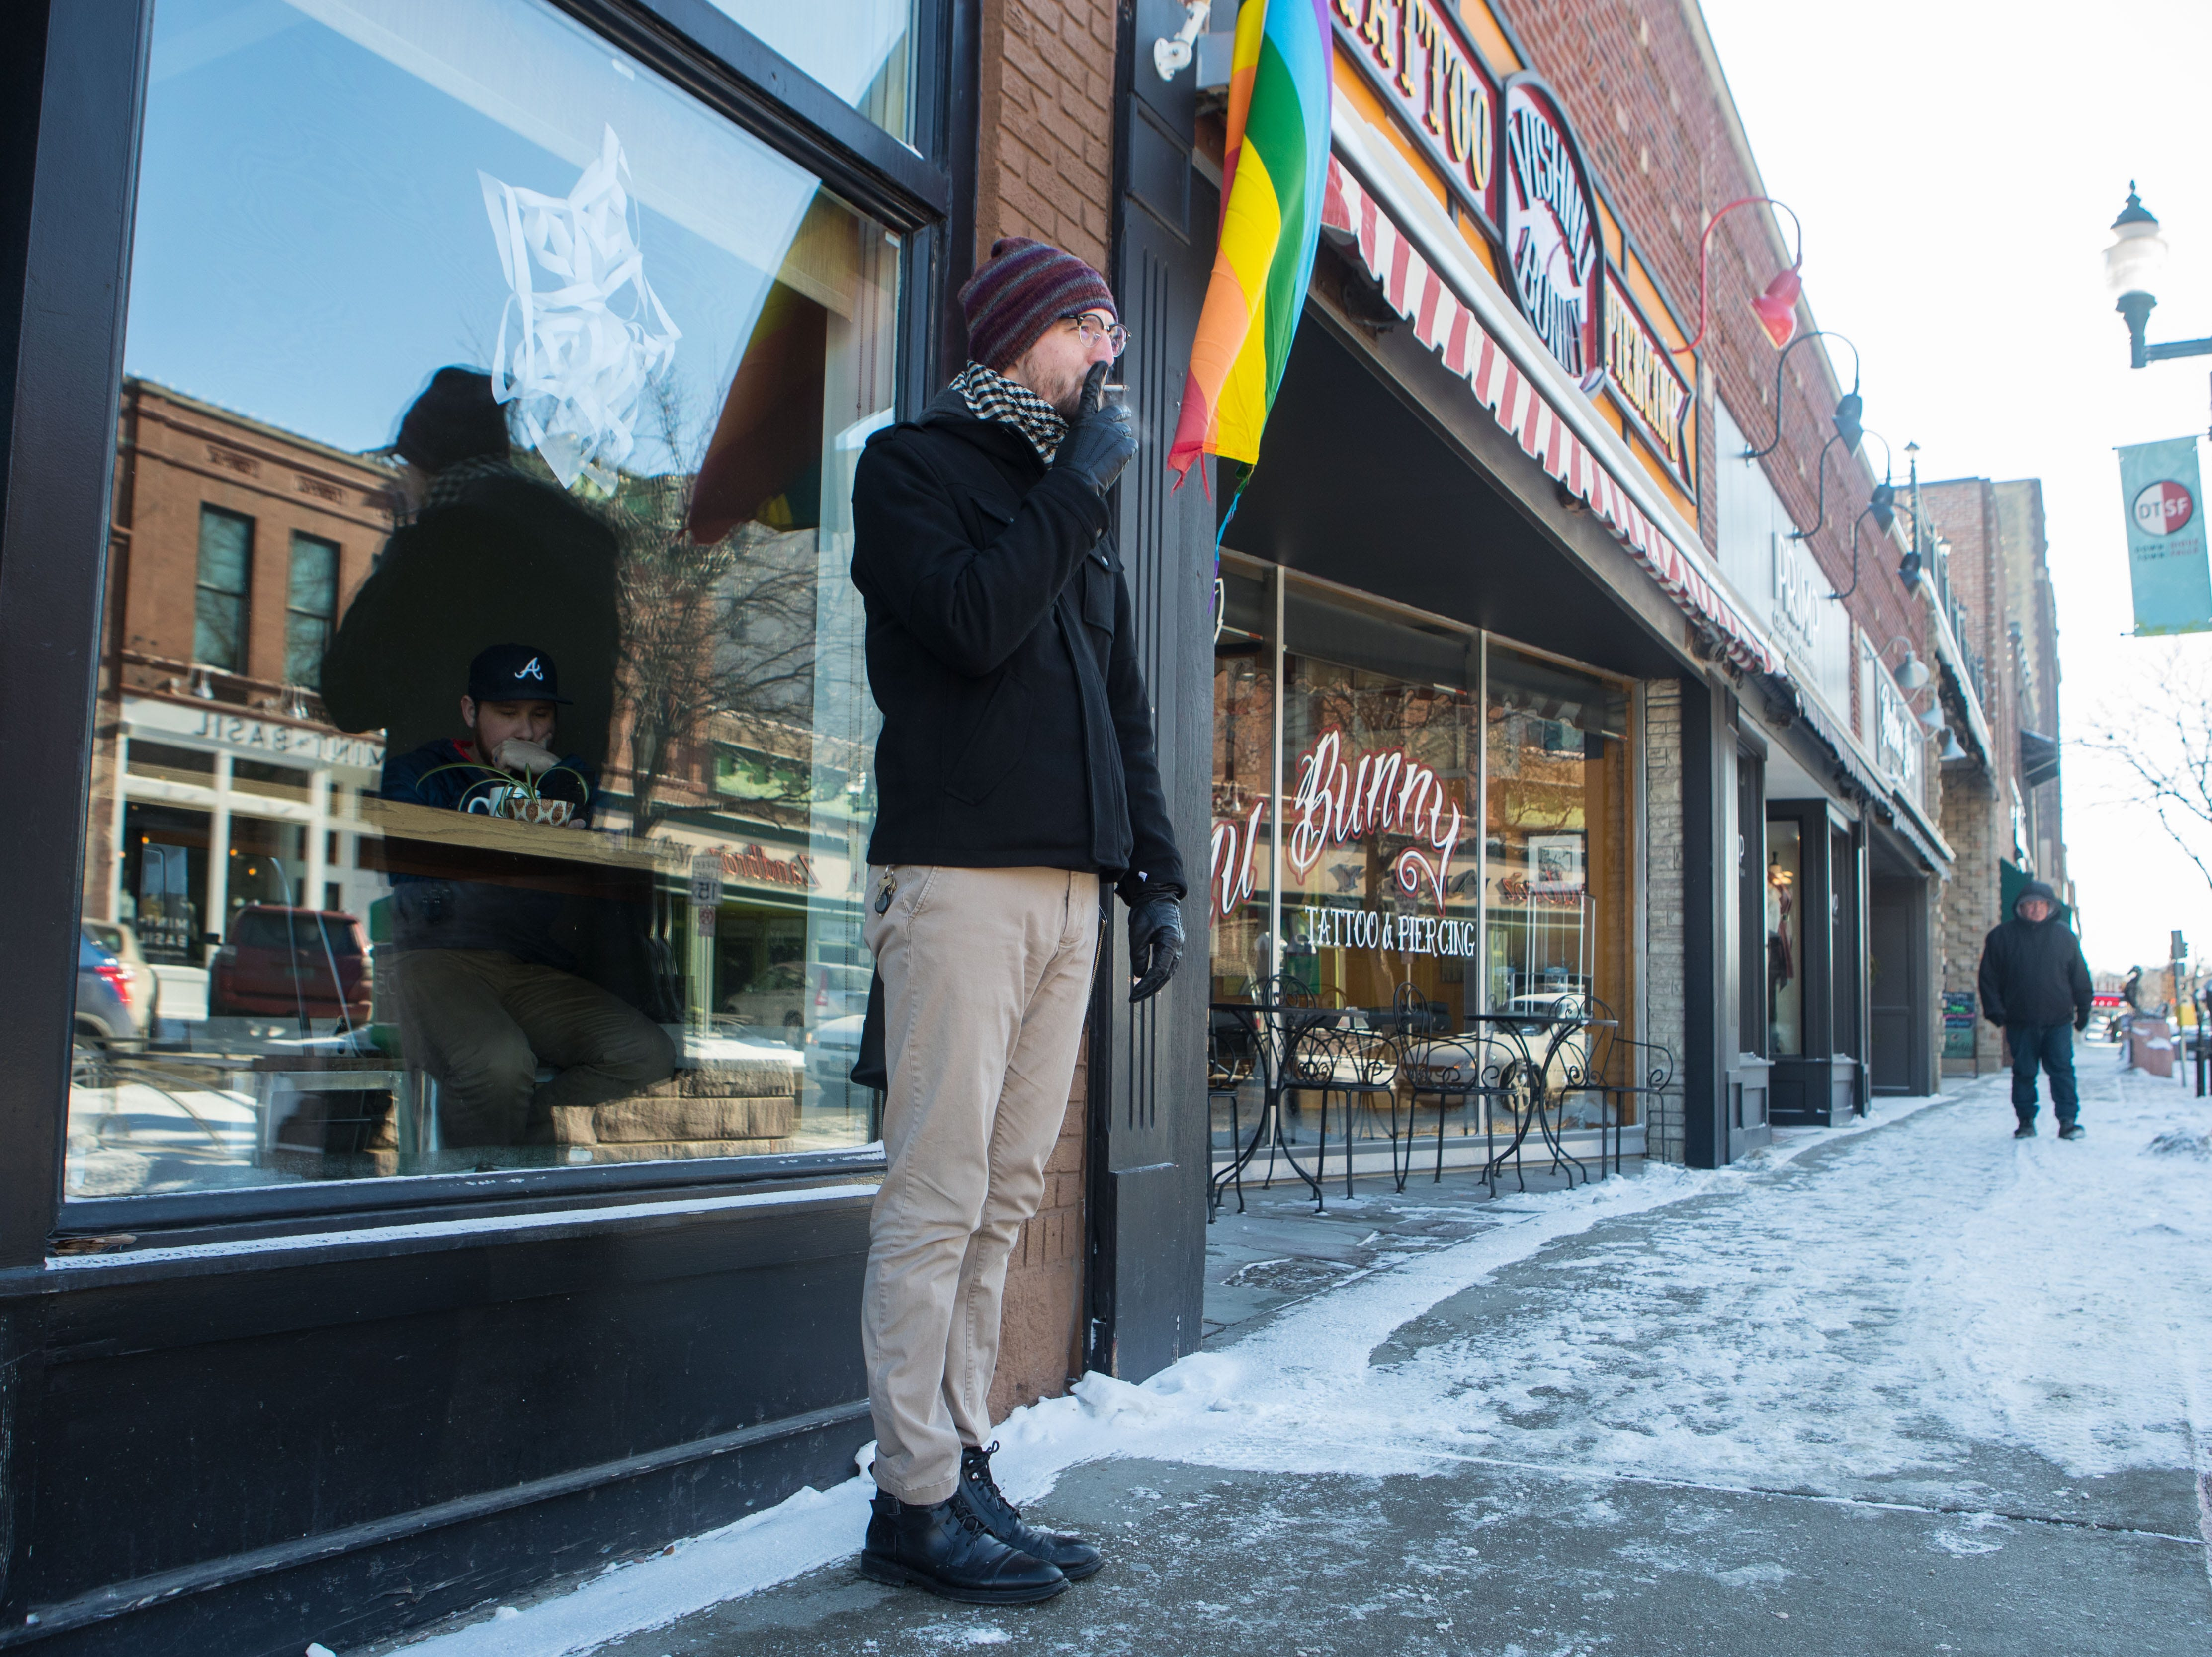 Austin Mielke takes a smoke break outside of Coffea in downtown Sioux Falls, S.D., Monday, Jan. 28, 2019.